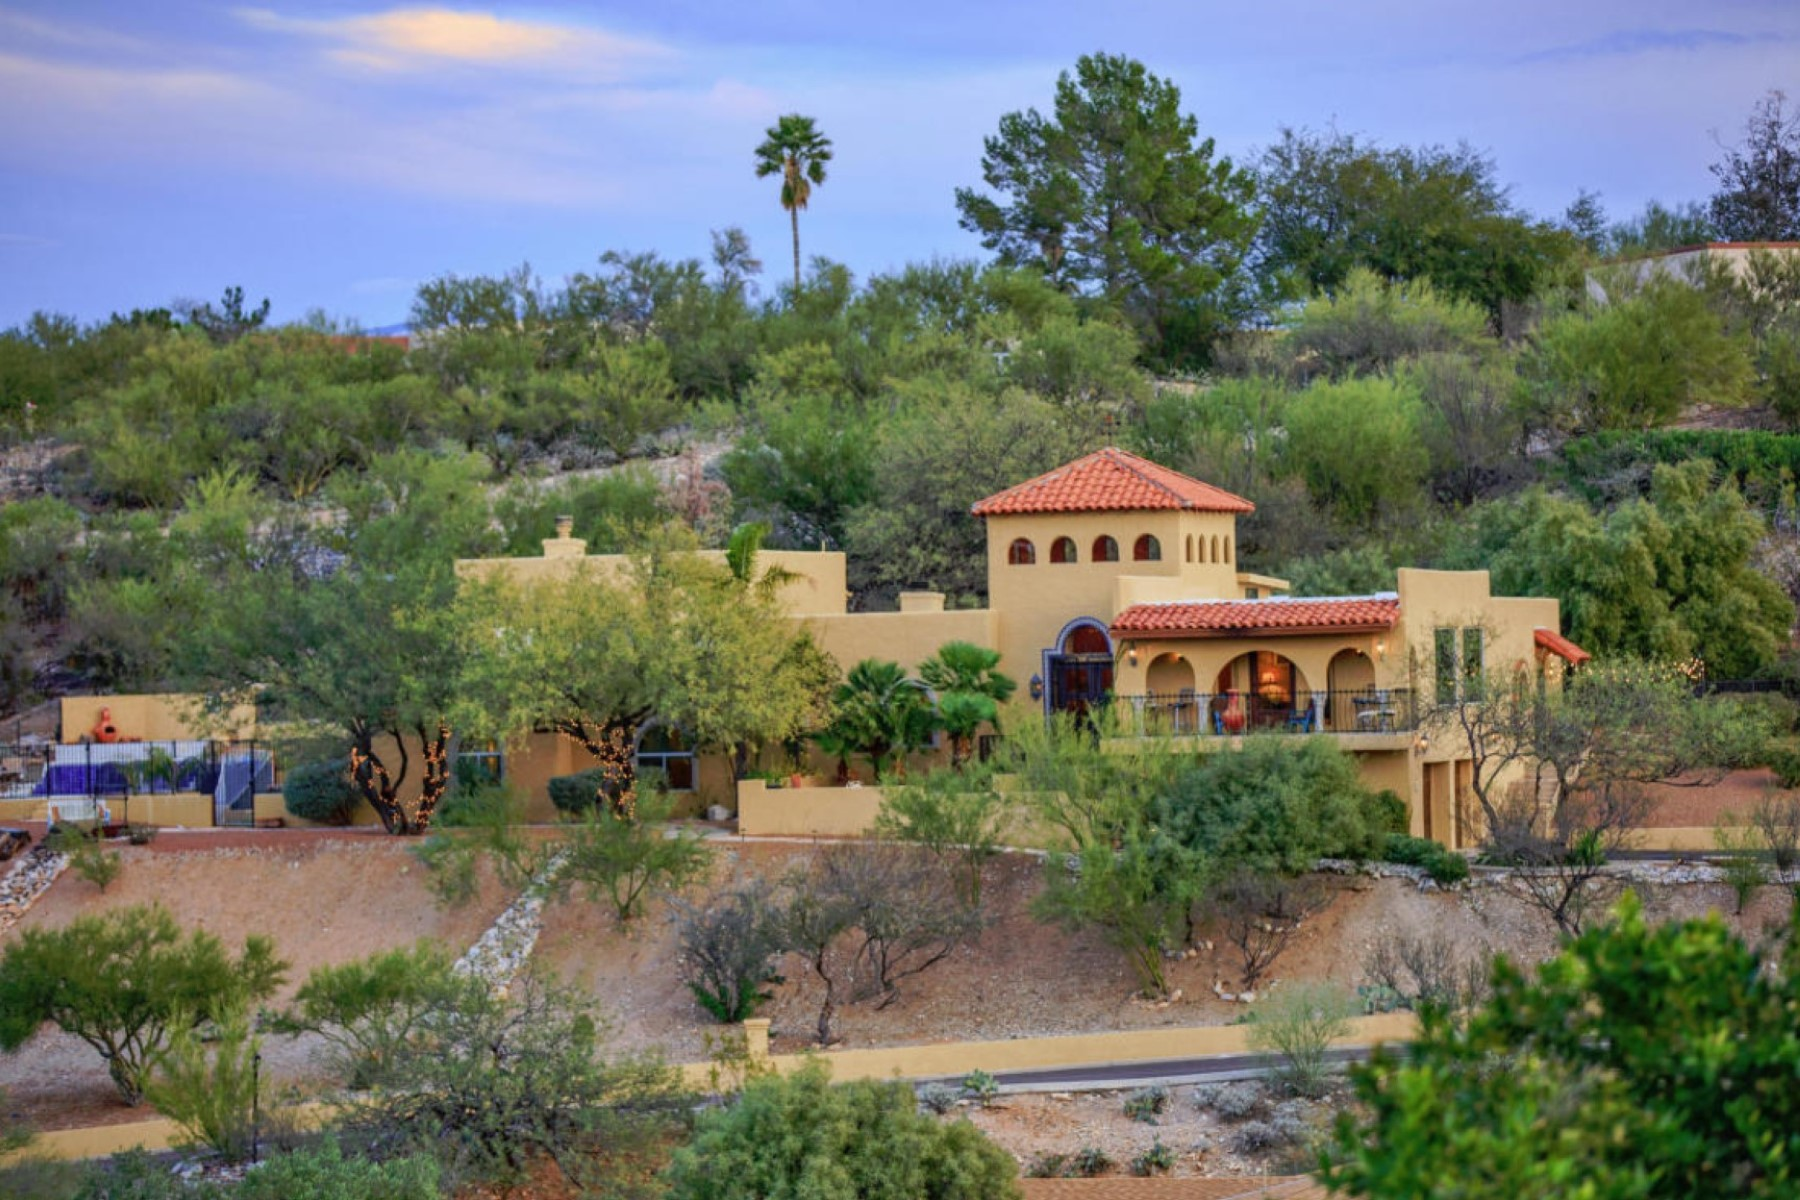 Single Family Home for Sale at Magnificent Mediterranean Family Home with Gorgeous Views 5884 E Calle Del Ciervo Tucson, Arizona 8575 United States